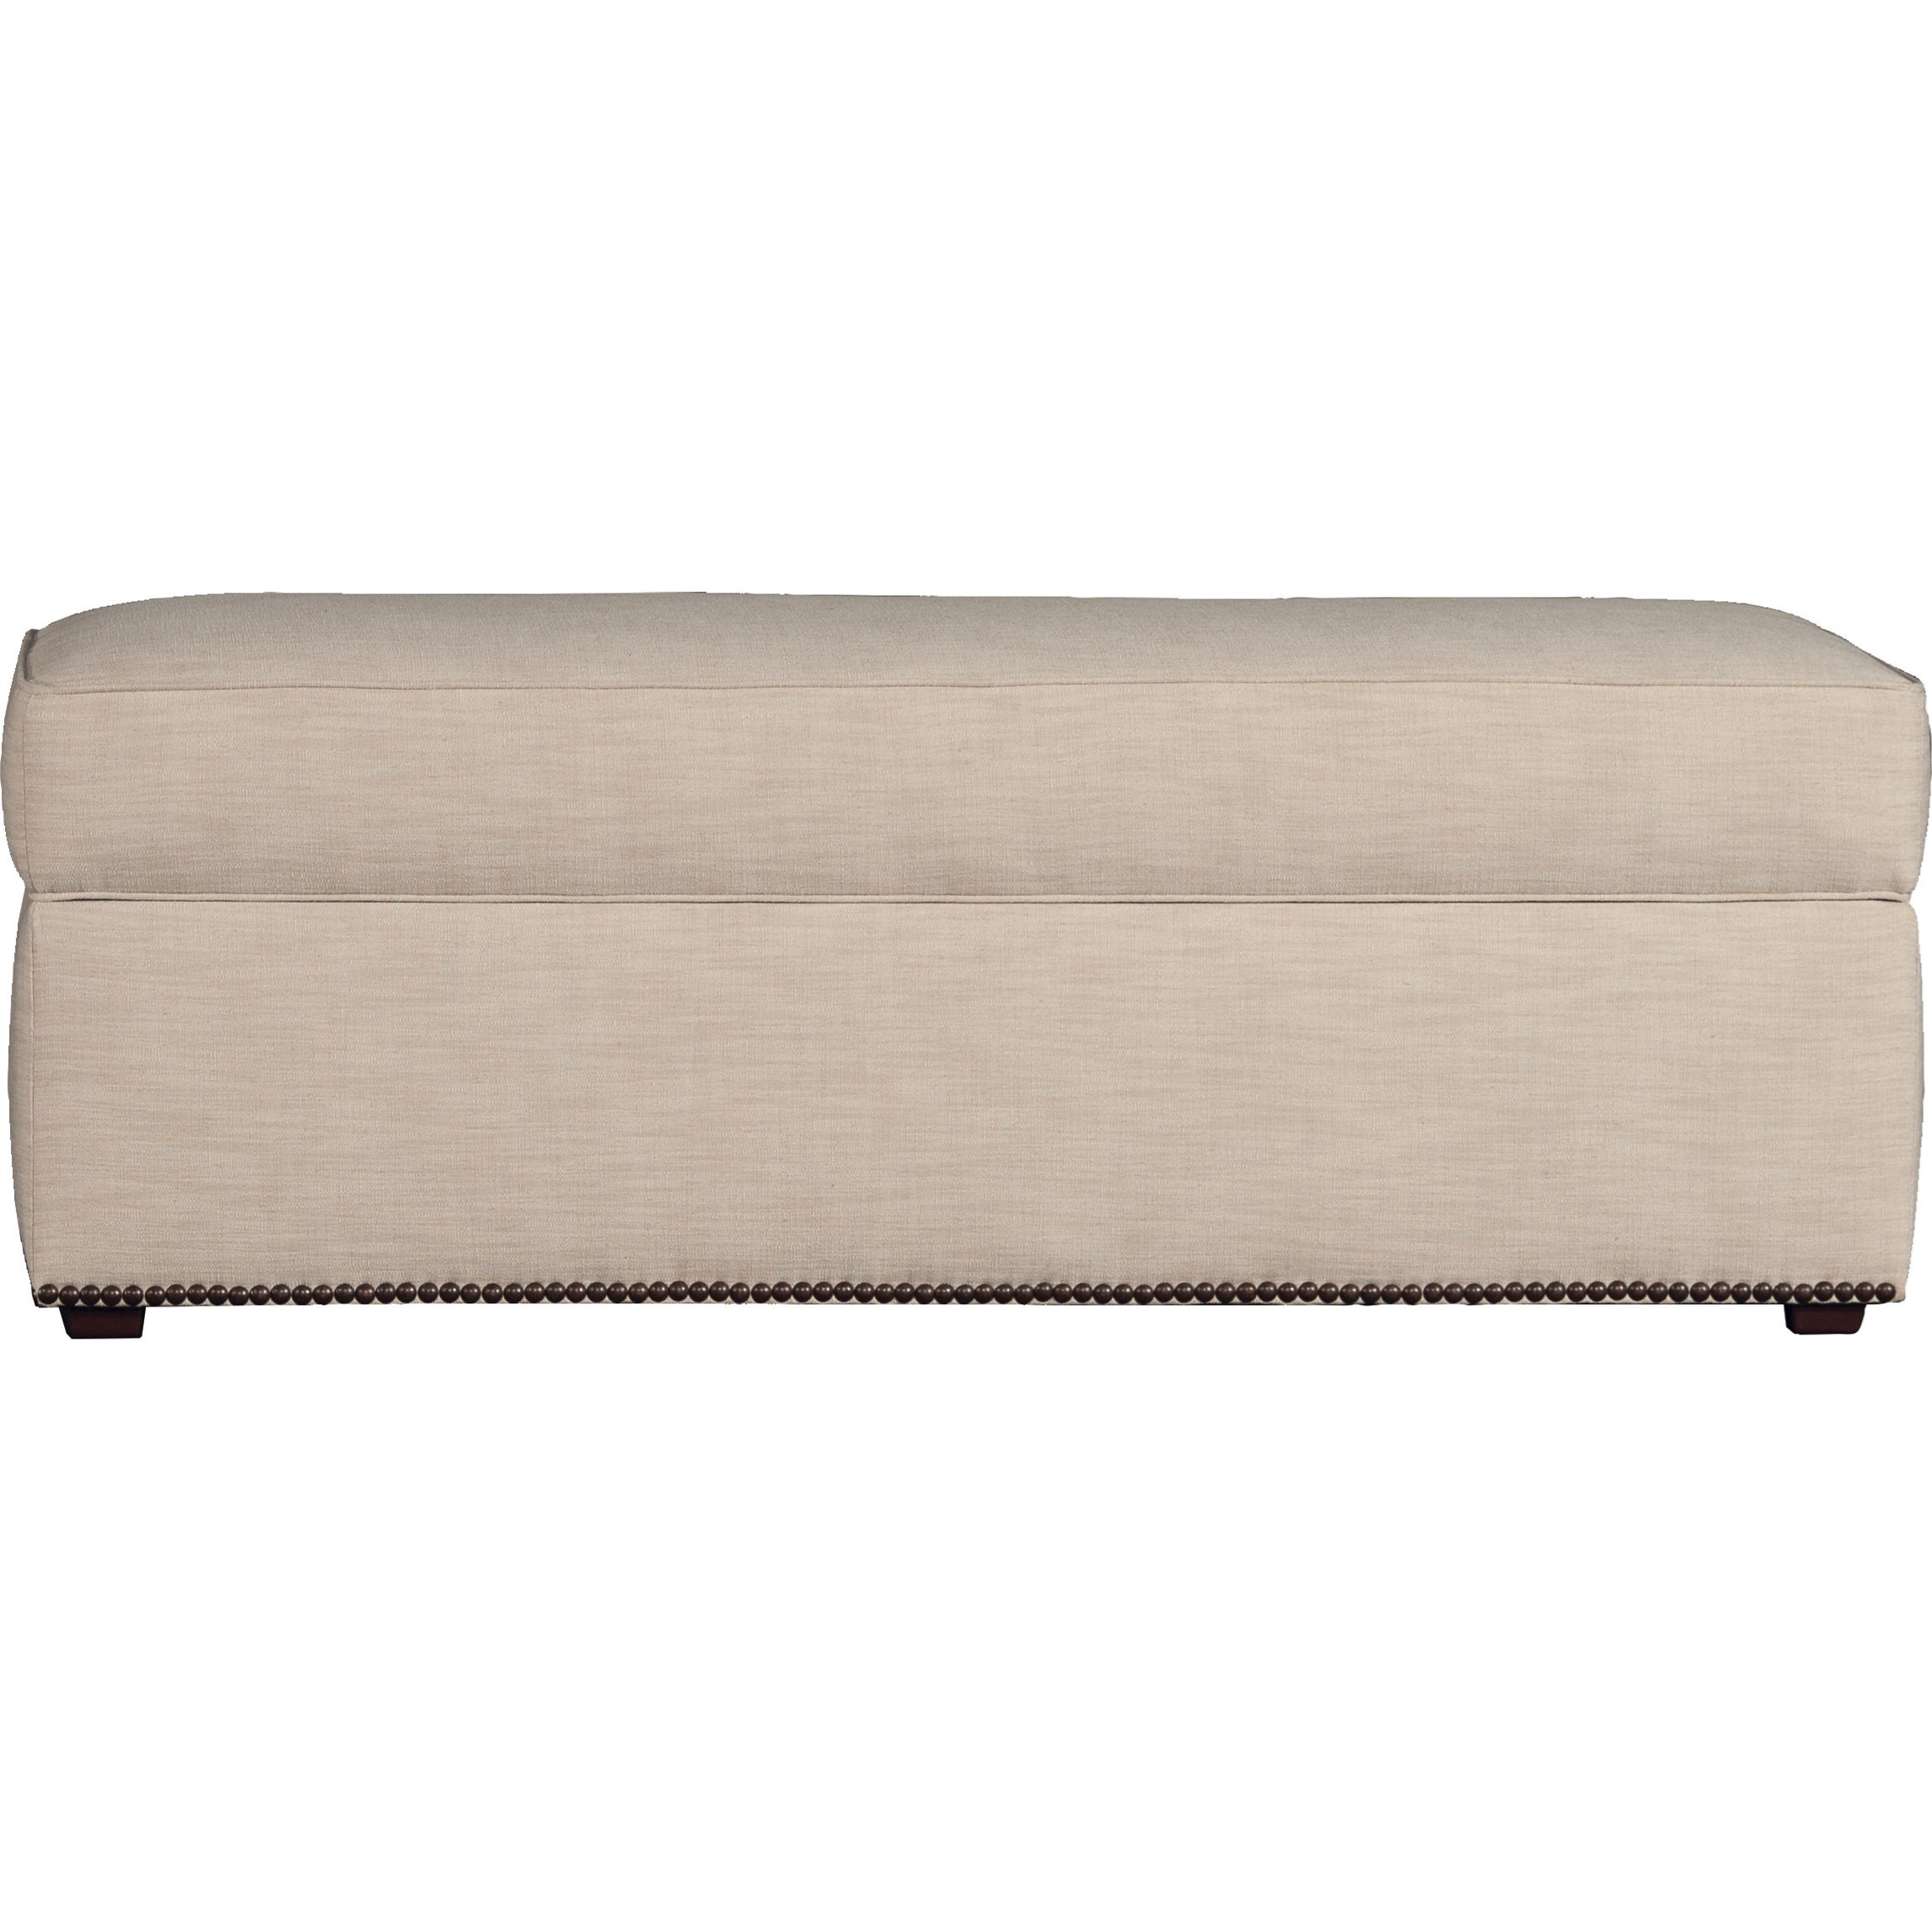 7140 Small Storage Bench by Mayo at Wilcox Furniture